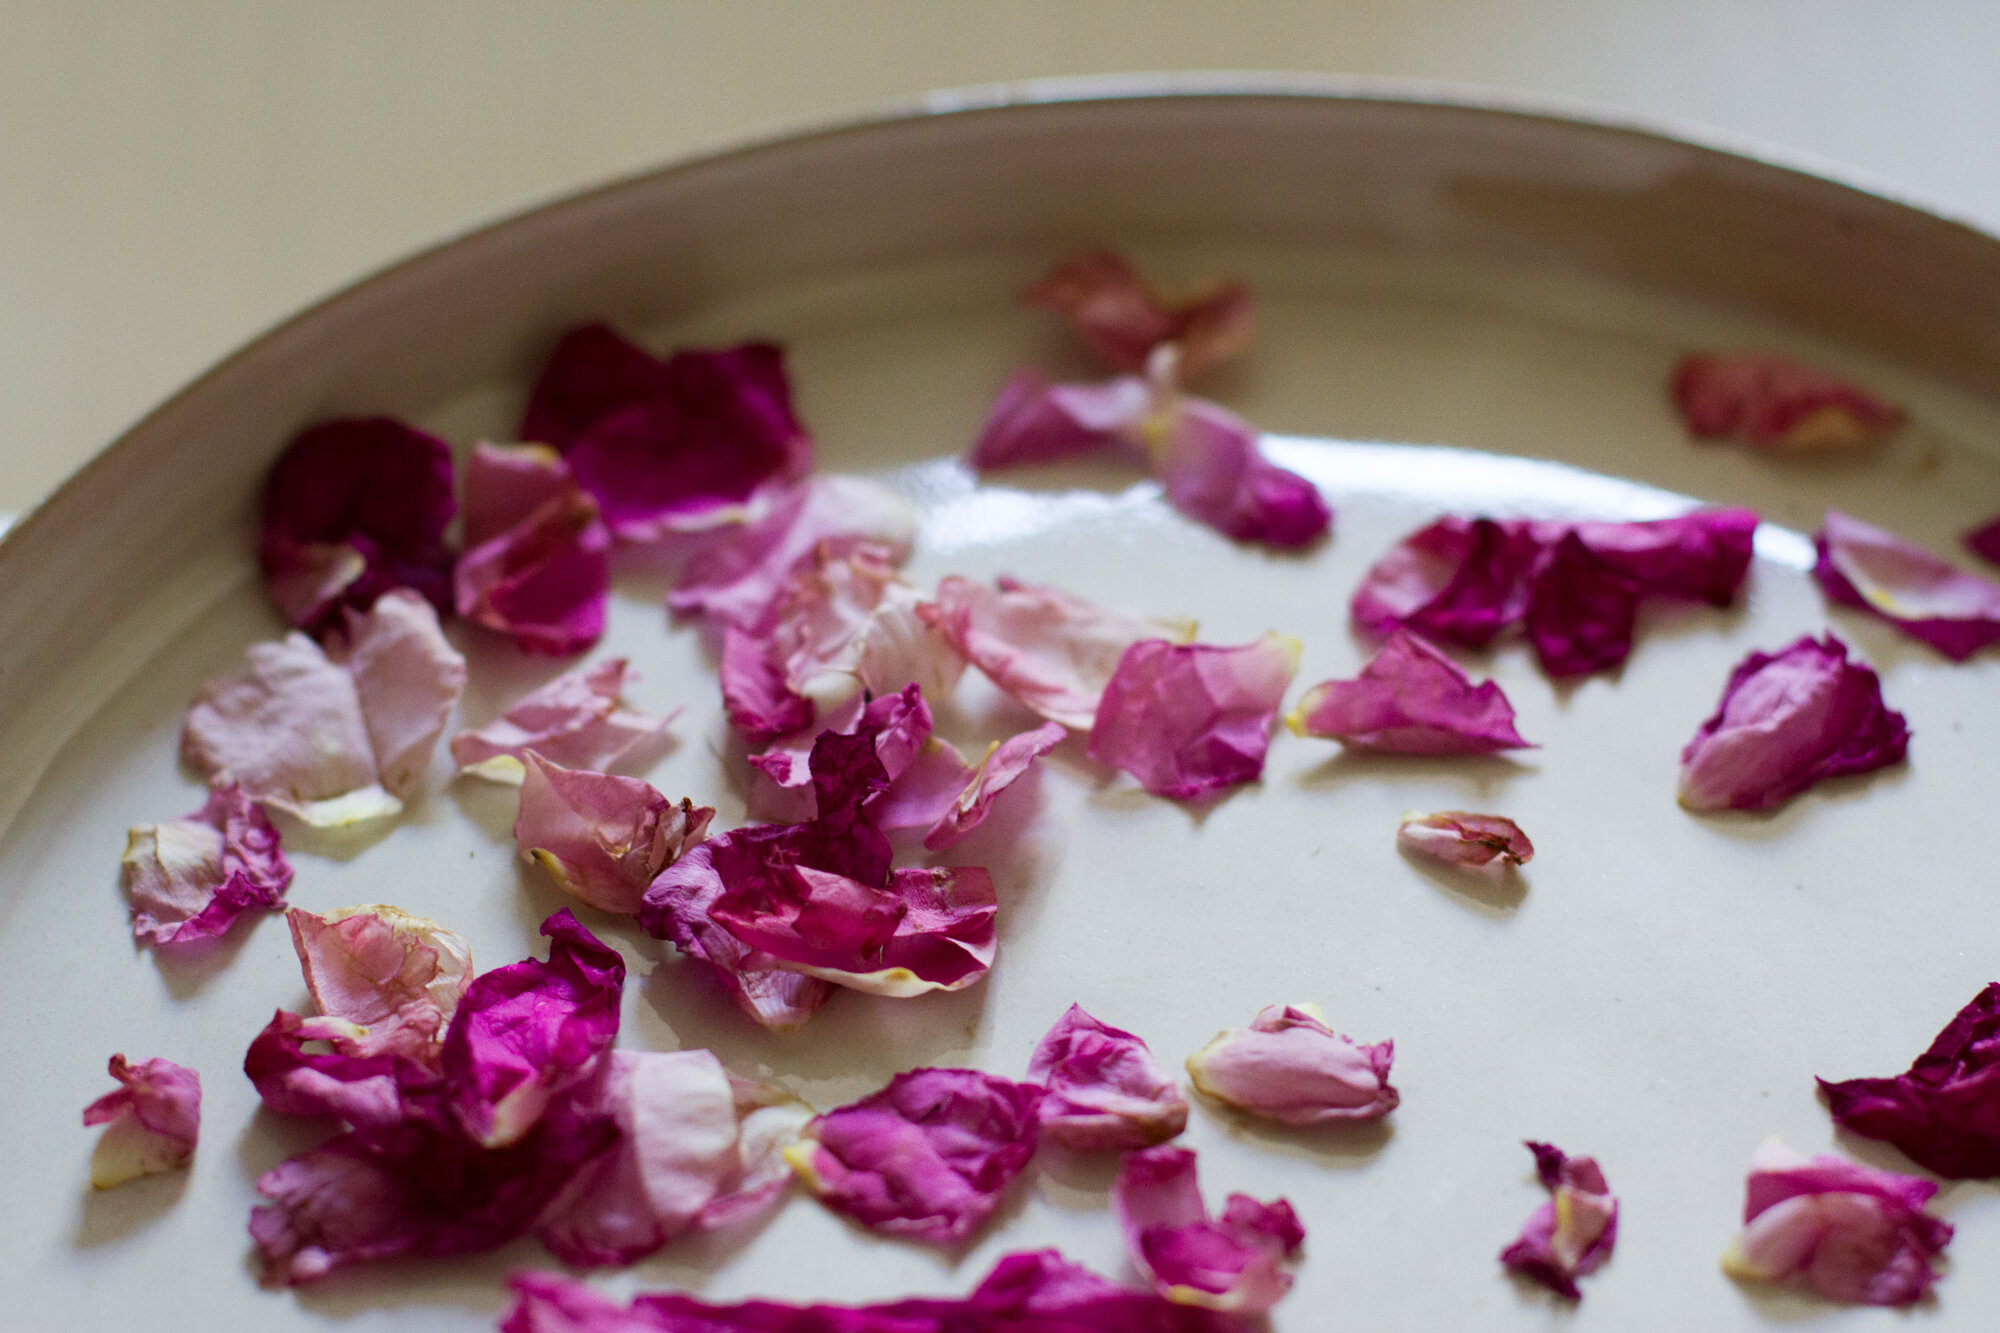 rose petals | reading my tea leaves